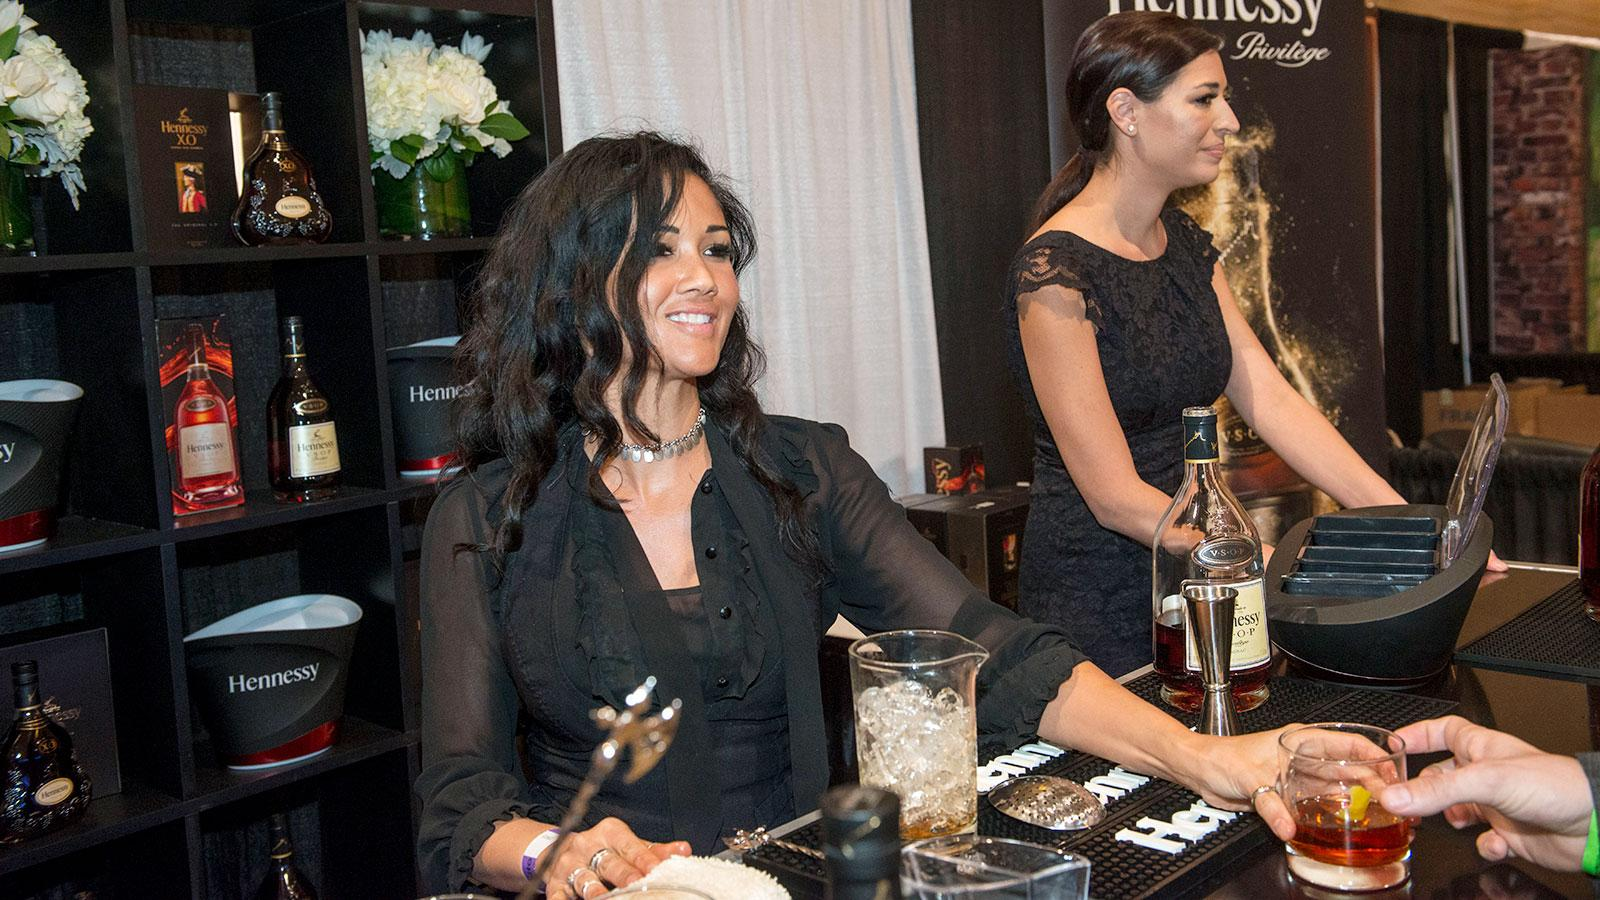 Isidra Suga from Hennessy pours drinks for thirsty smokers.